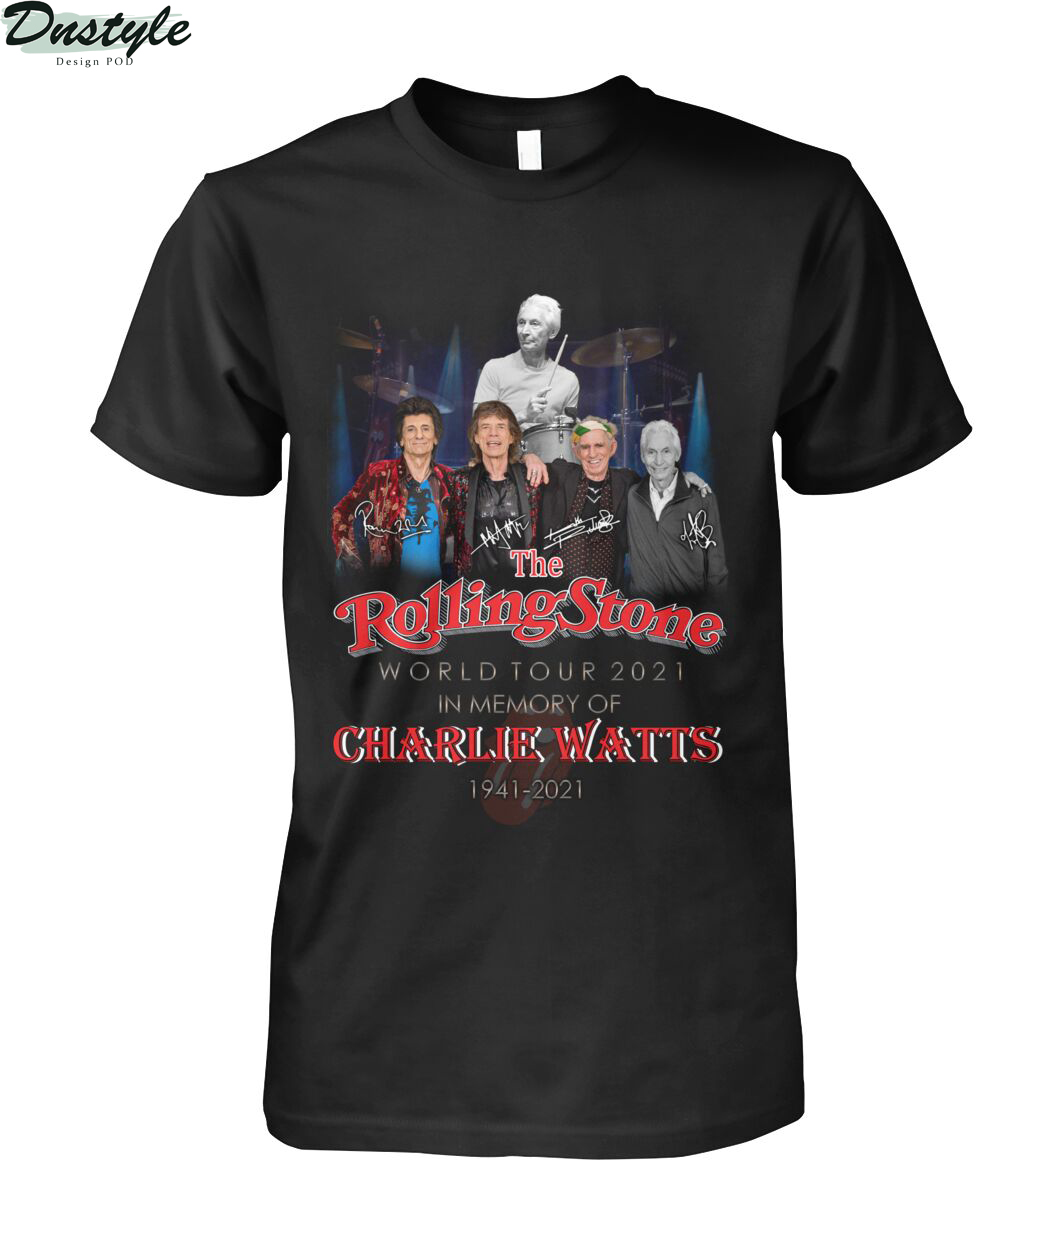 The rolling stone world tour 2021 in memory of Charlie Watts 1941-2021 shirt